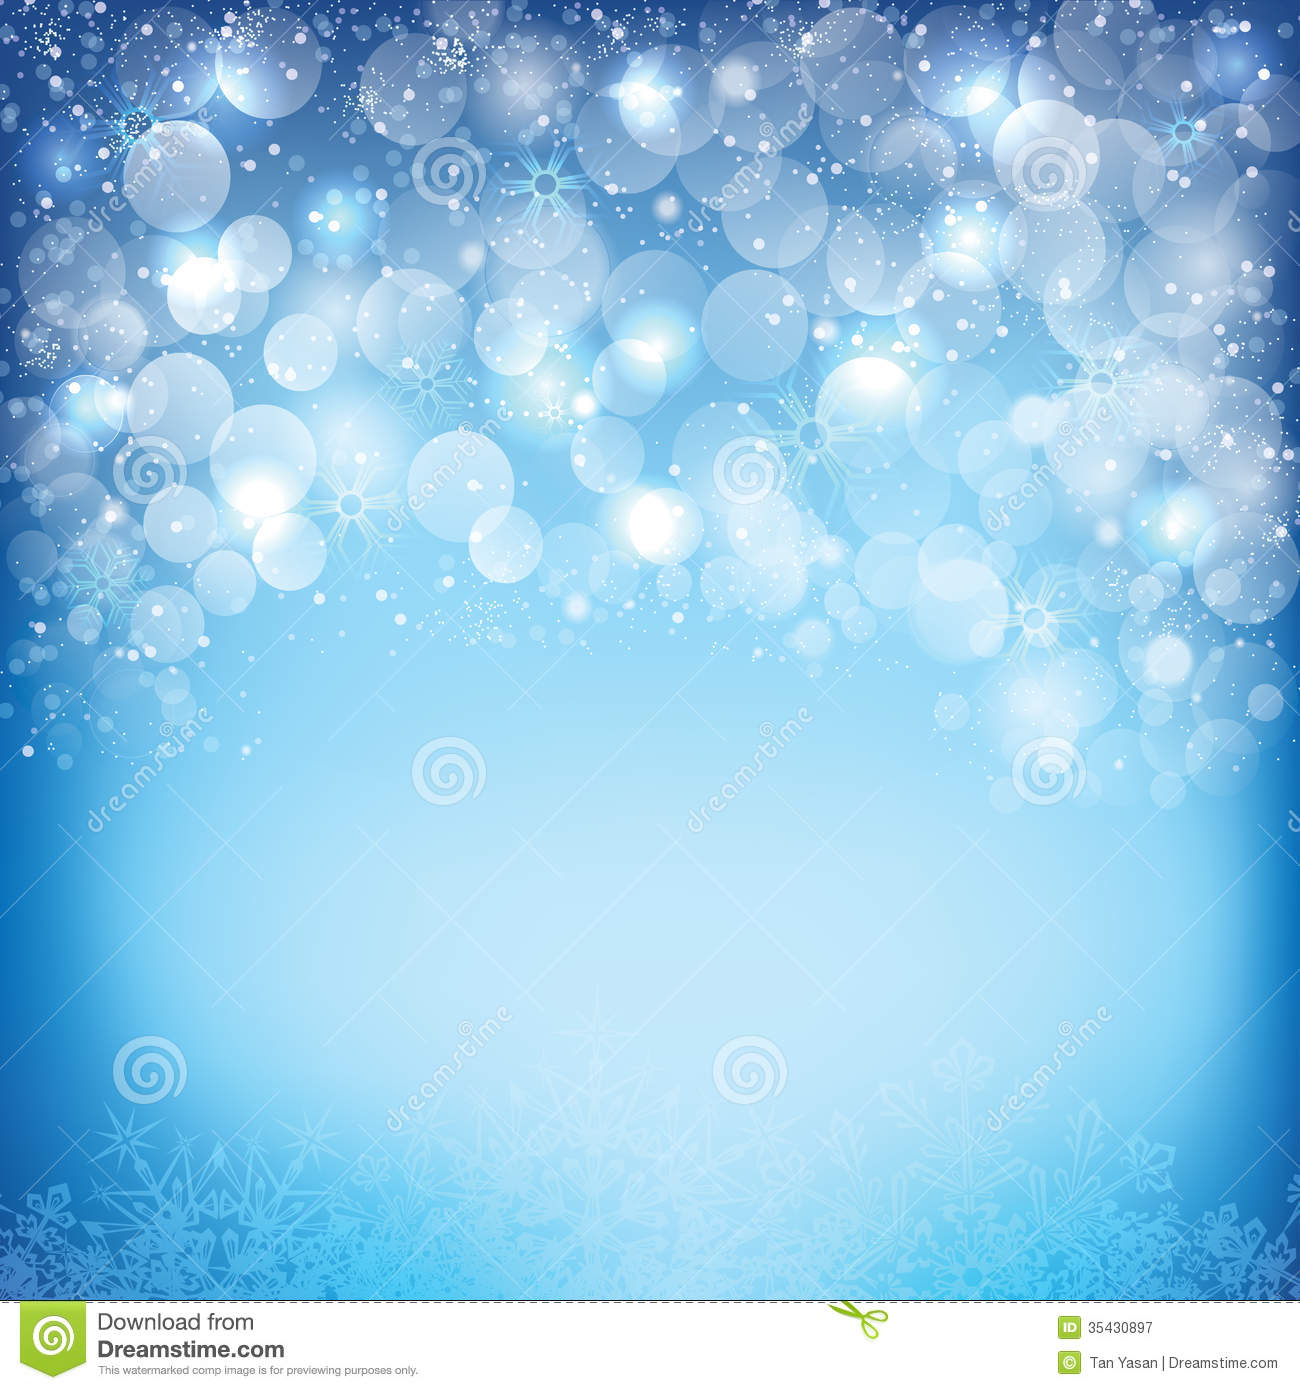 1300x1390 - Happy New Year Backgrounds 17